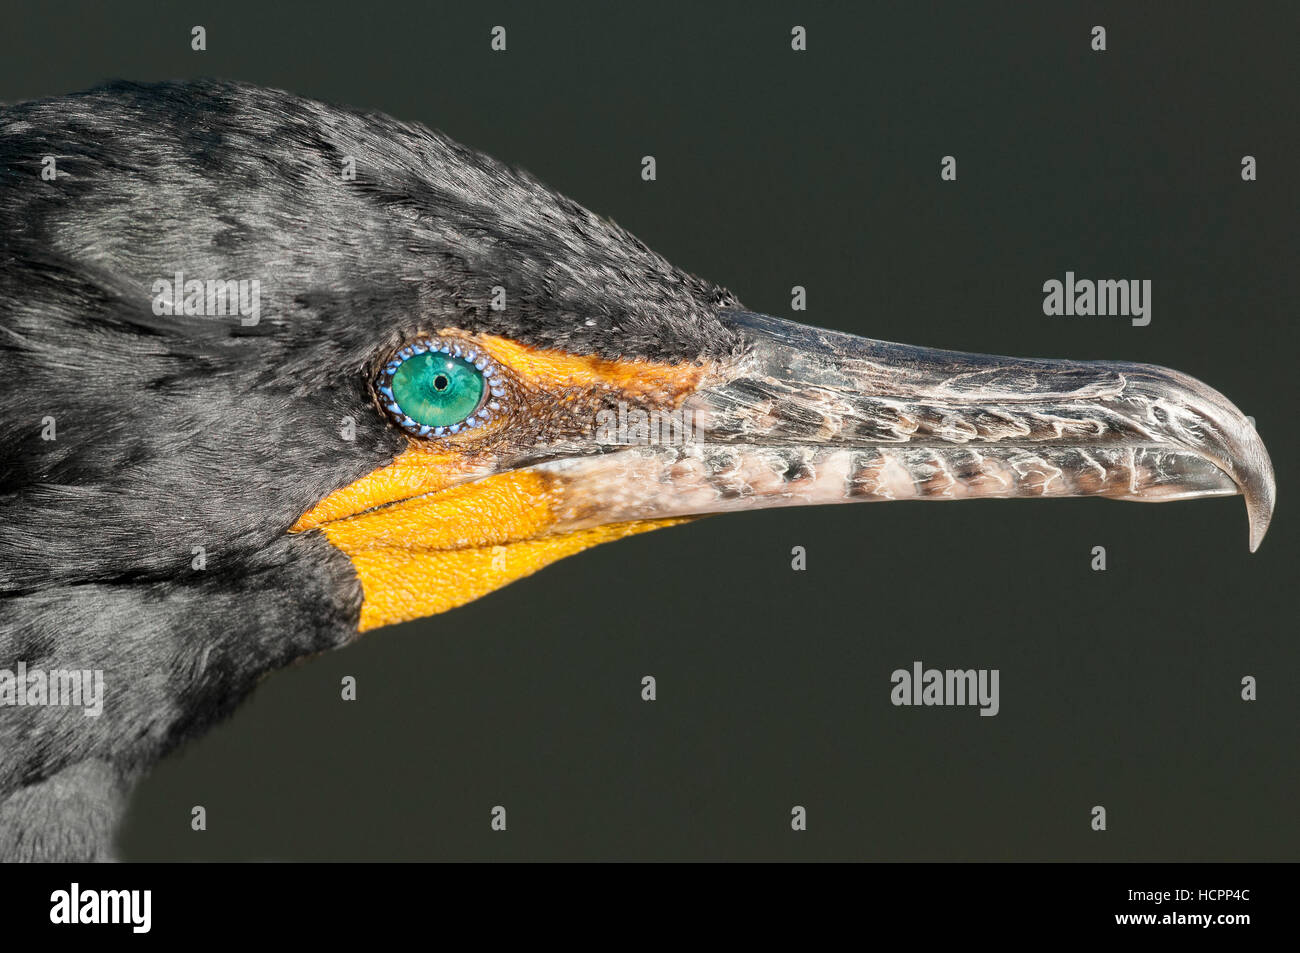 Double-crested Cormorant (Phalacrocorax auritus) close up beak and eye - Stock Image